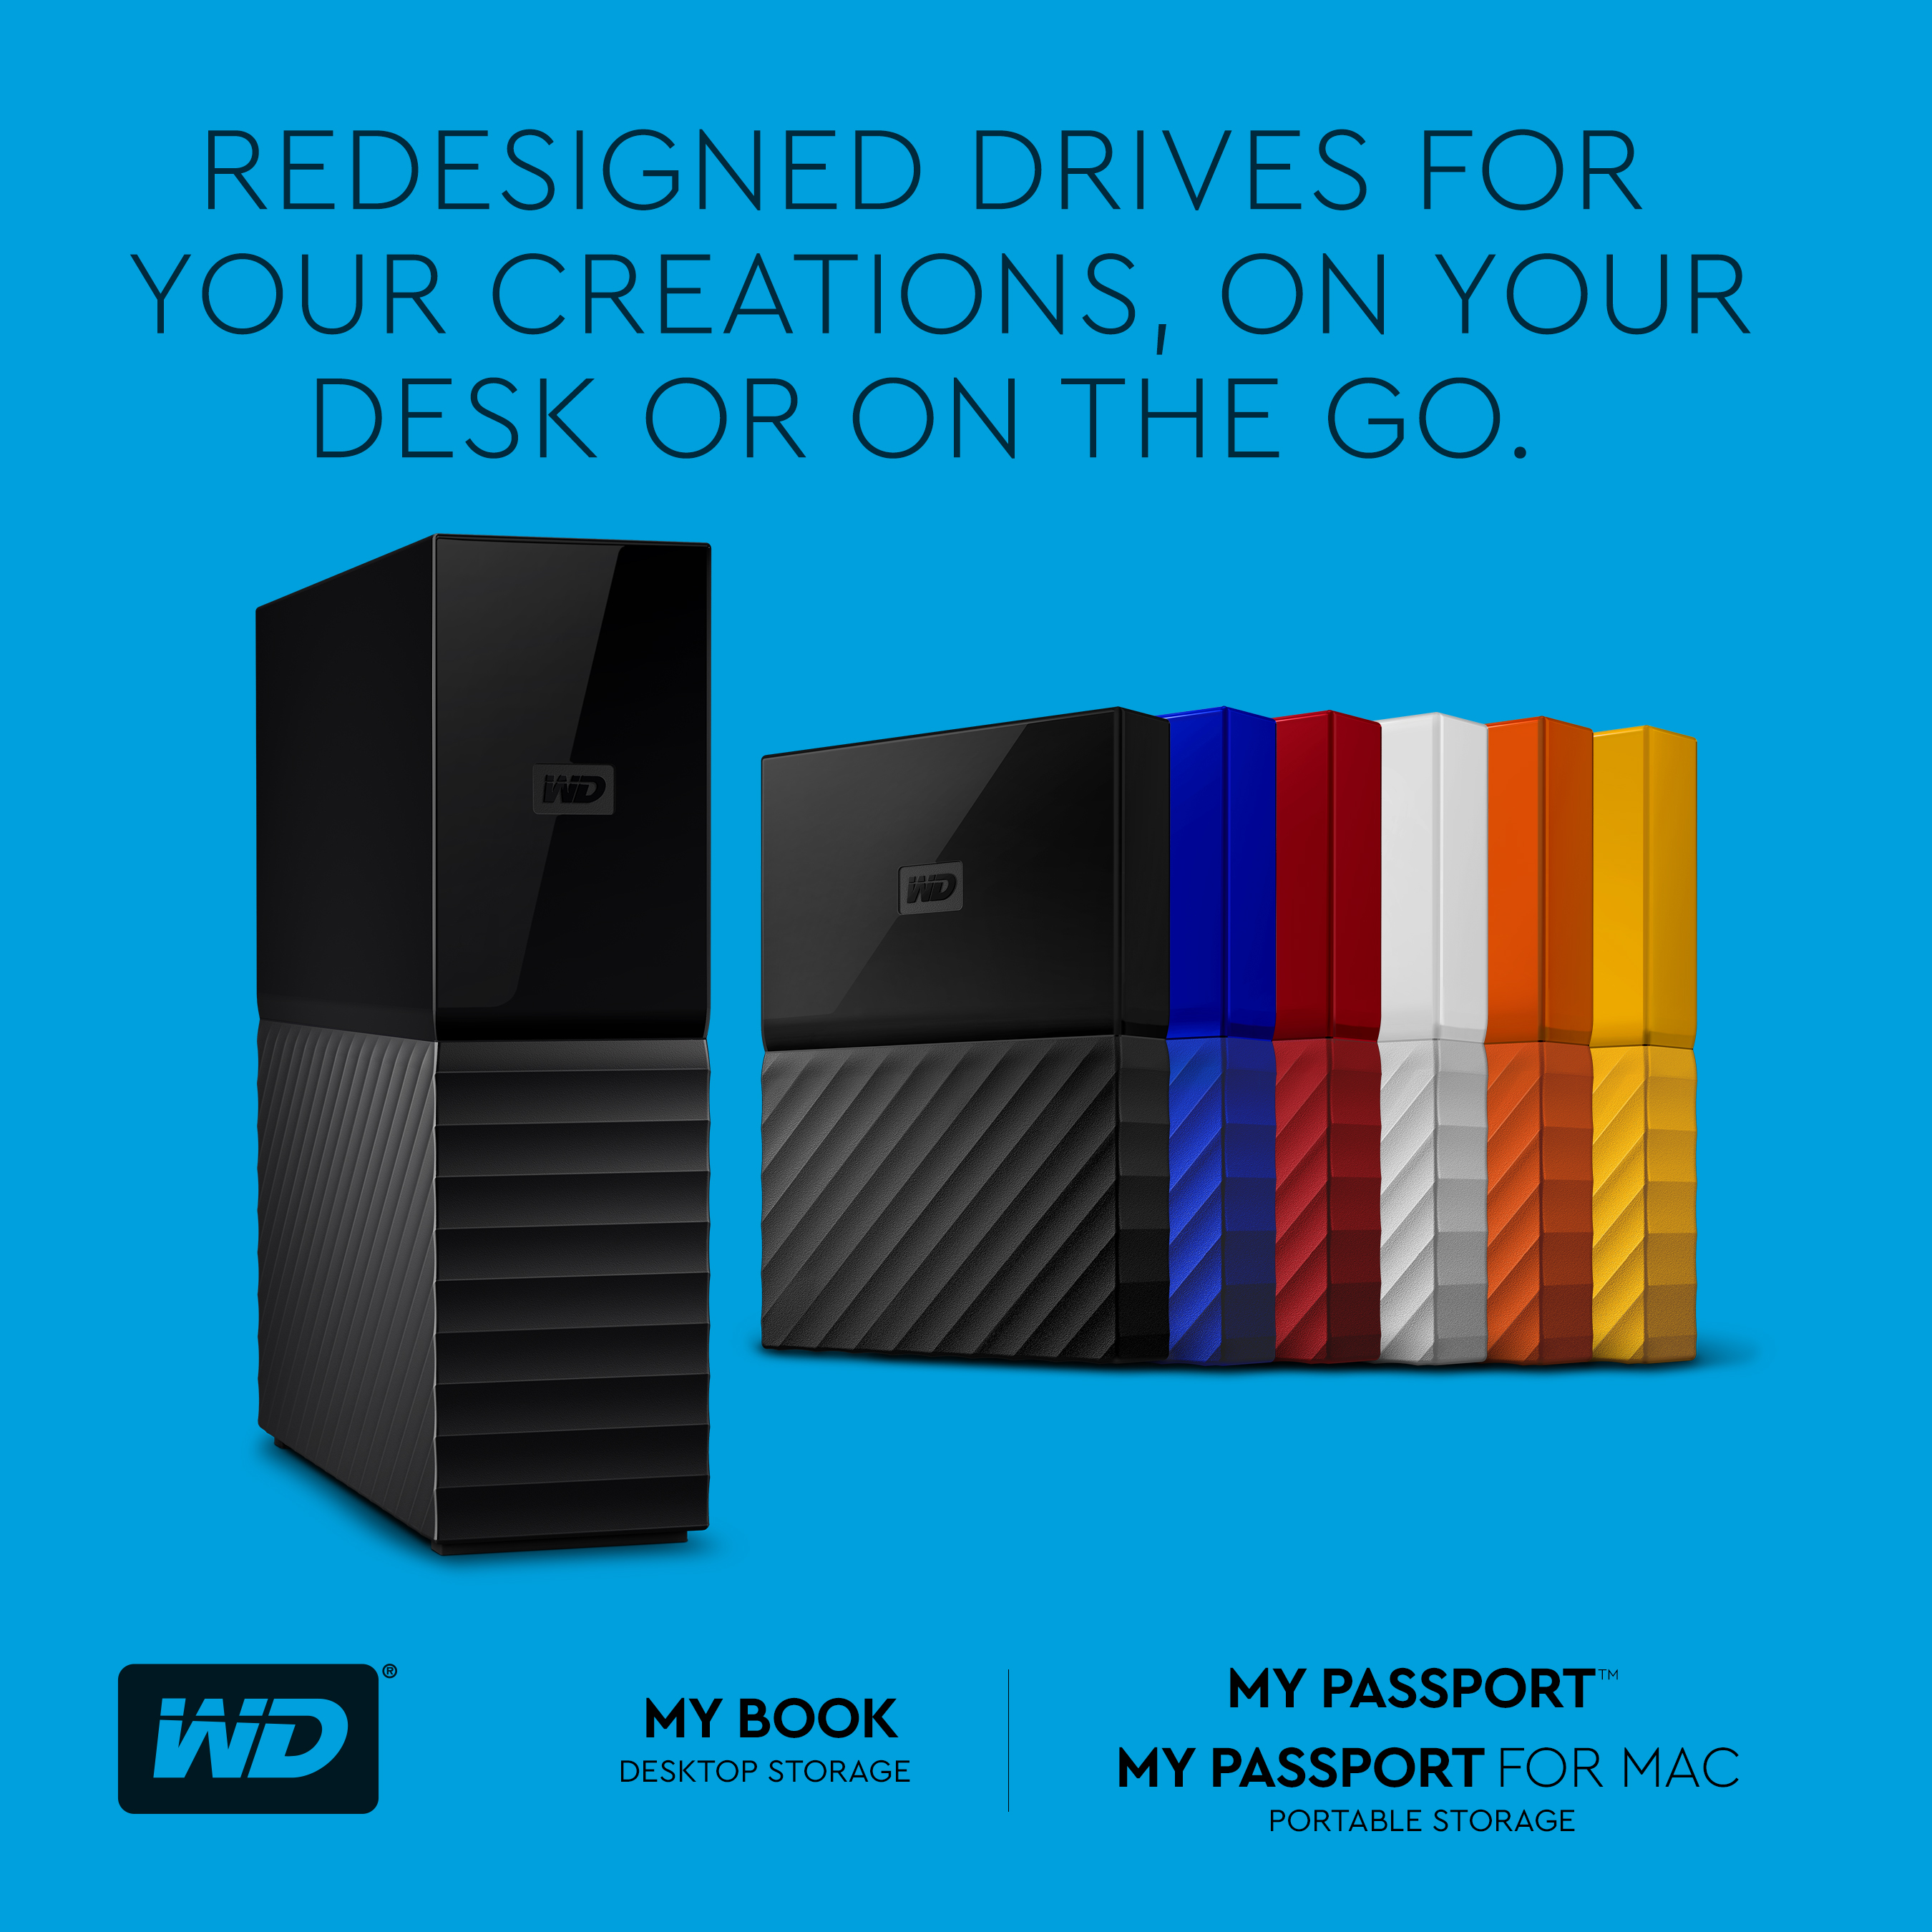 western-digital-announces-the-redesigned-mypassport-and-mybook-hdd